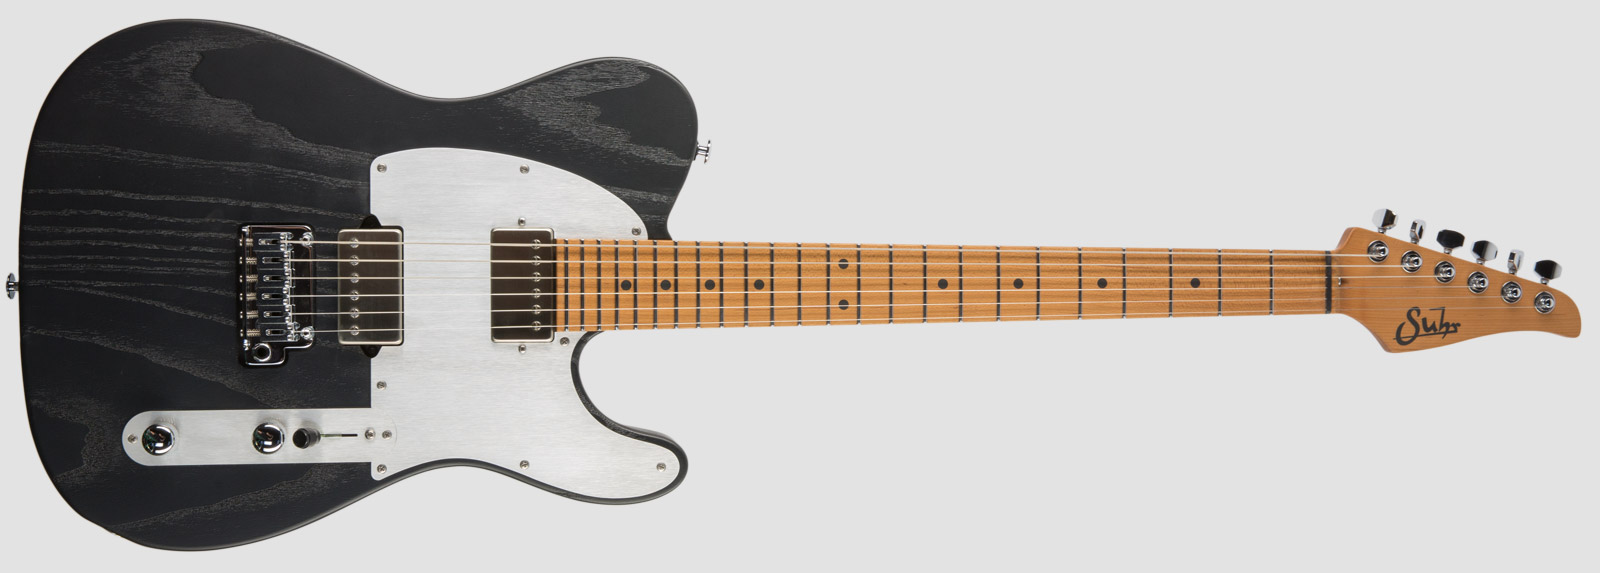 Suhr guitar wiring diagram free download wiring diagram xwiaw suhr free download wiring diagram andy wood signature modern t suhr of suhr guitar wiring diagram asfbconference2016 Images